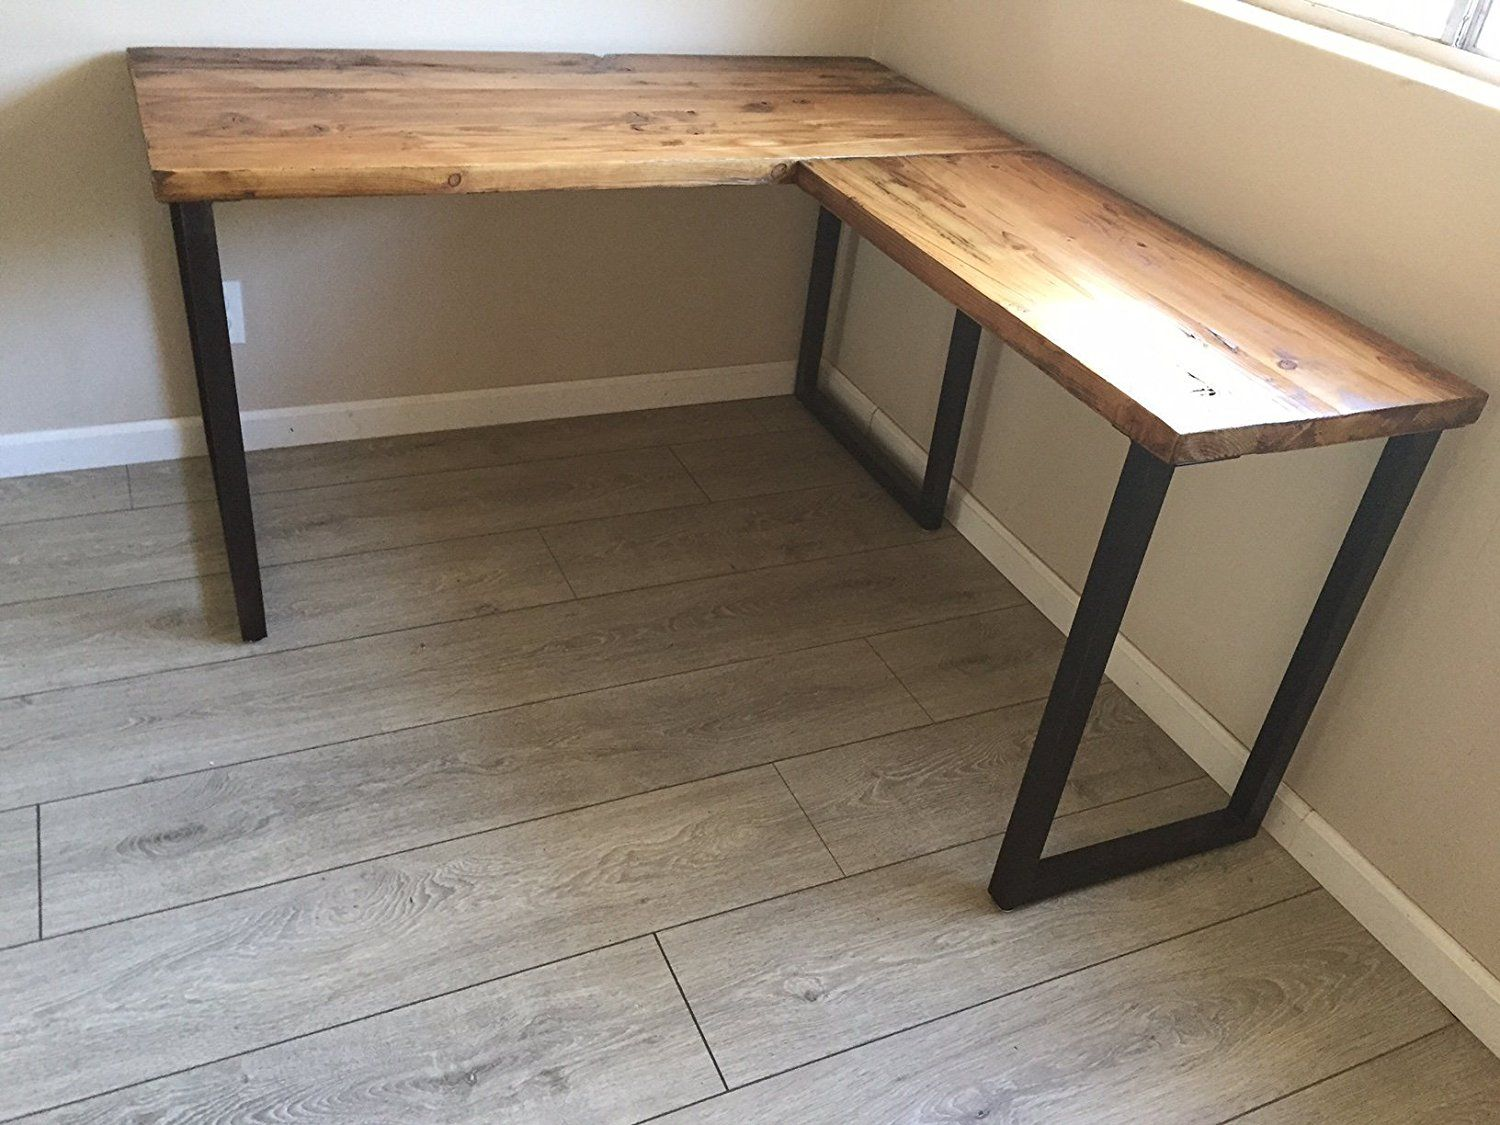 Make The Wise Choice On Barn Wood Furniture